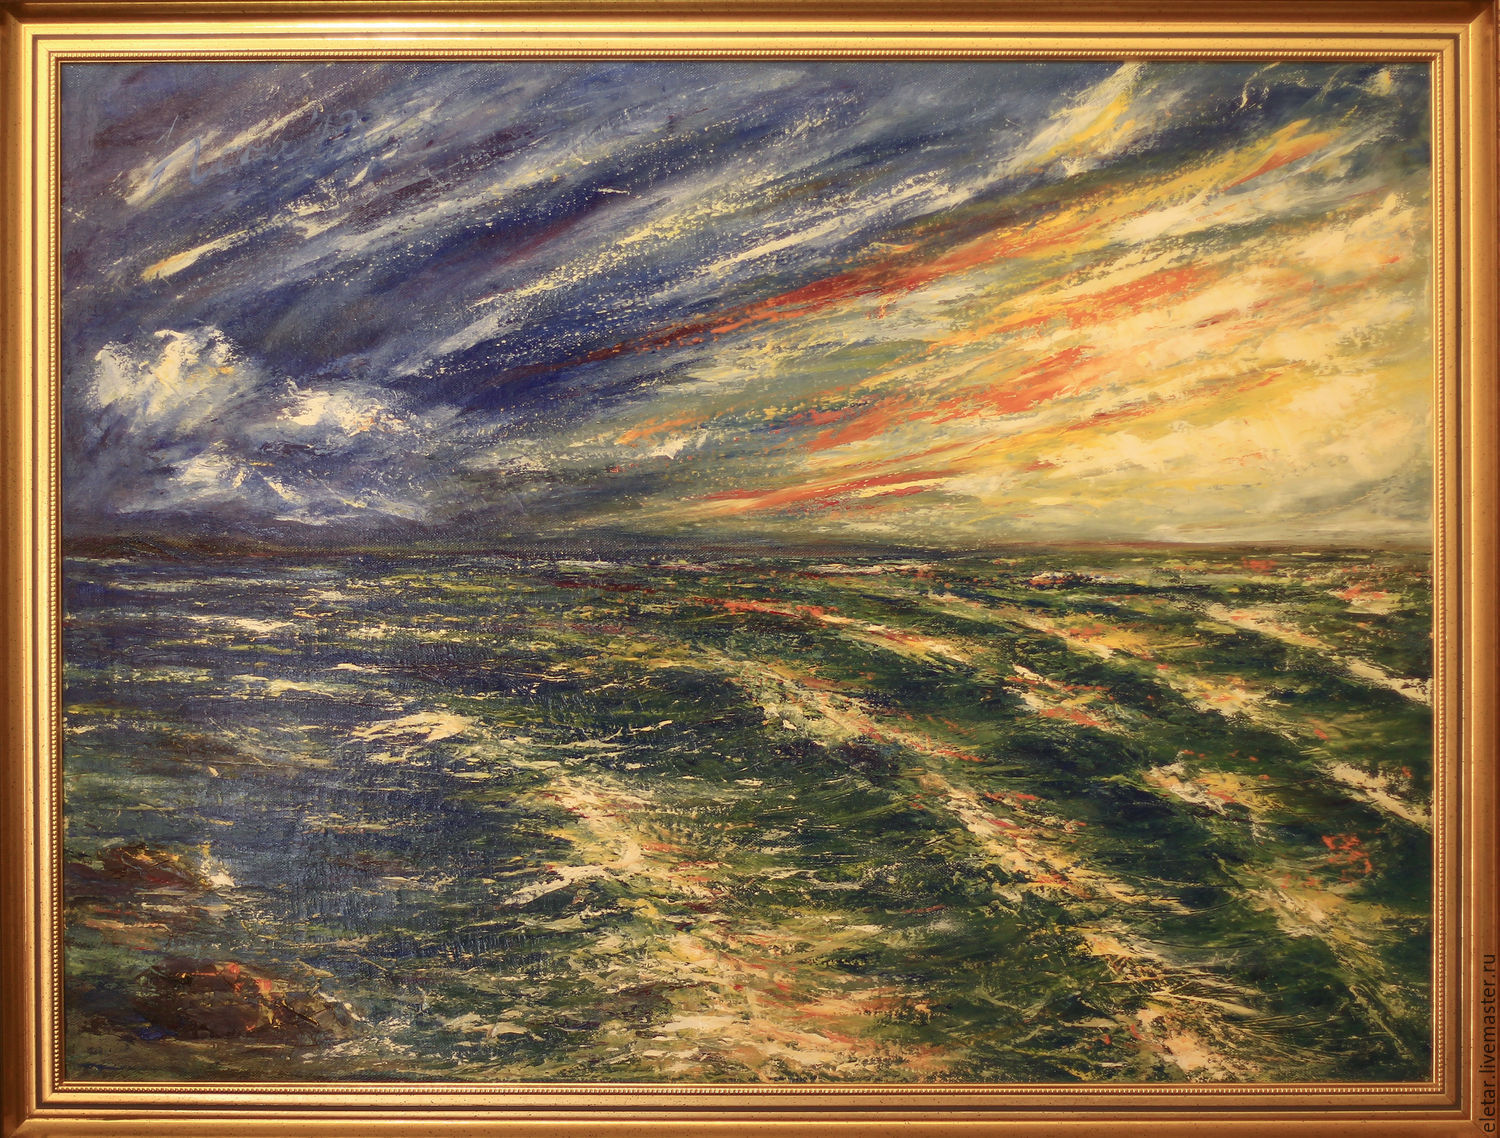 Landscapes Handmade Livemaster Original Seascape Paintings On Canvas Sea Painting Abstract